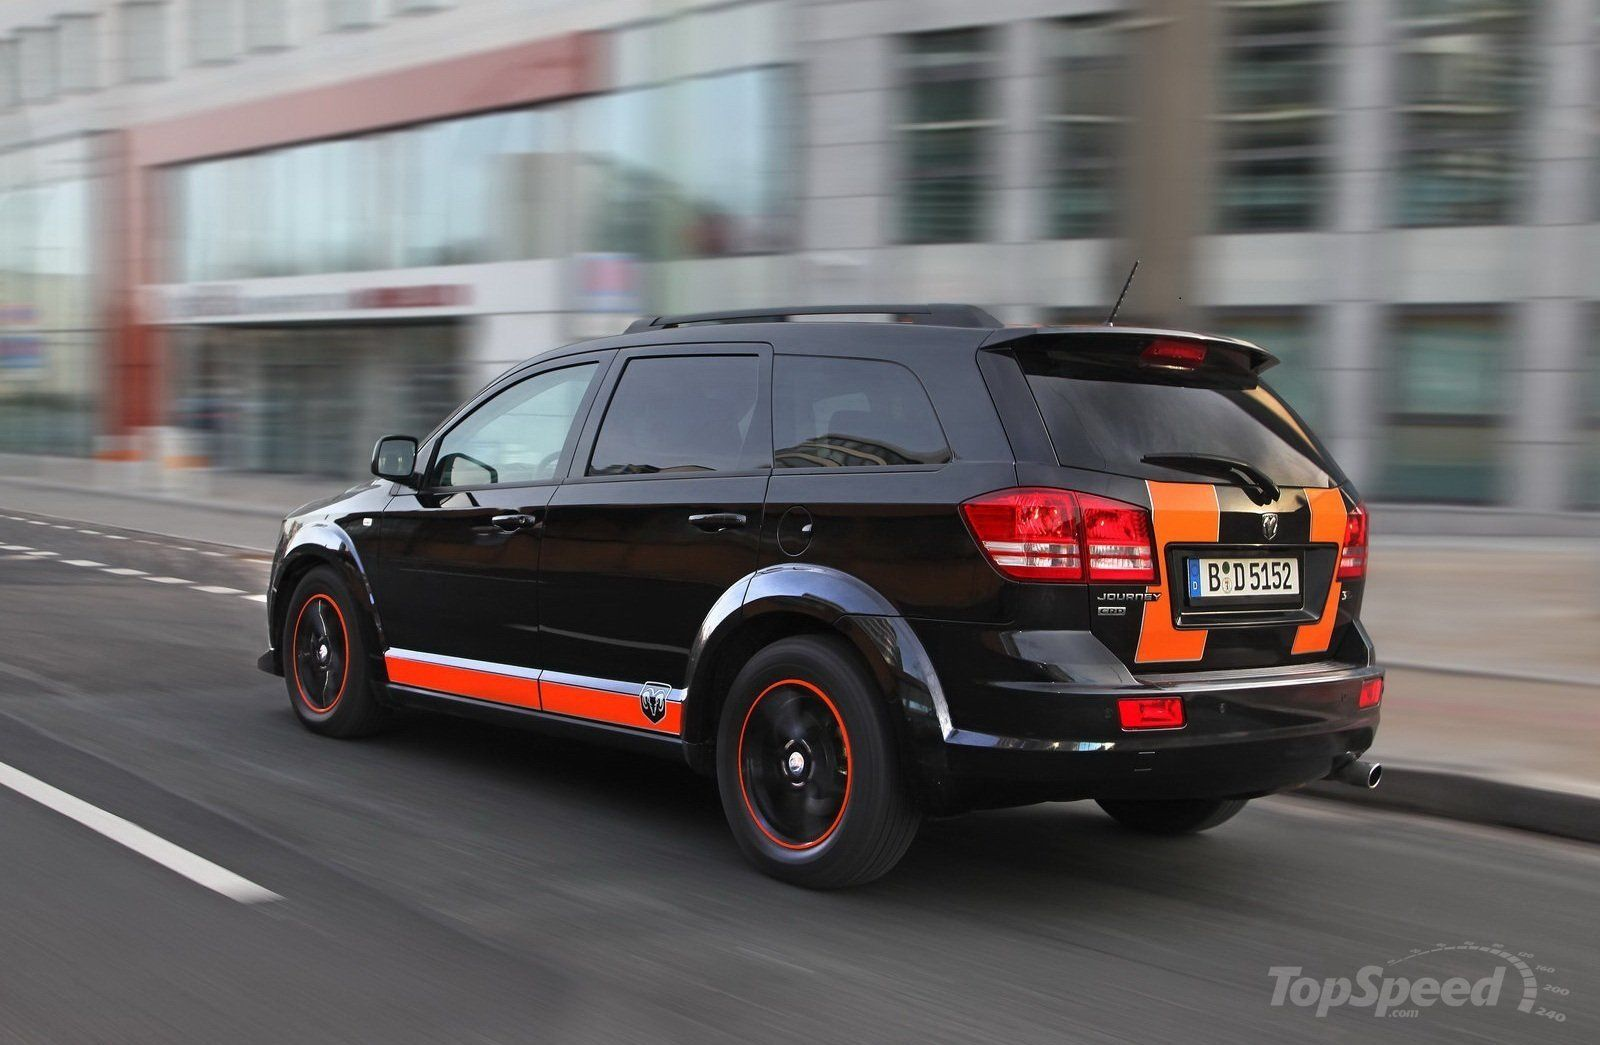 Dodge journey 2014 best new family suv for under 20 000 review articles news pinterest family suv journey 2014 and dodge journey